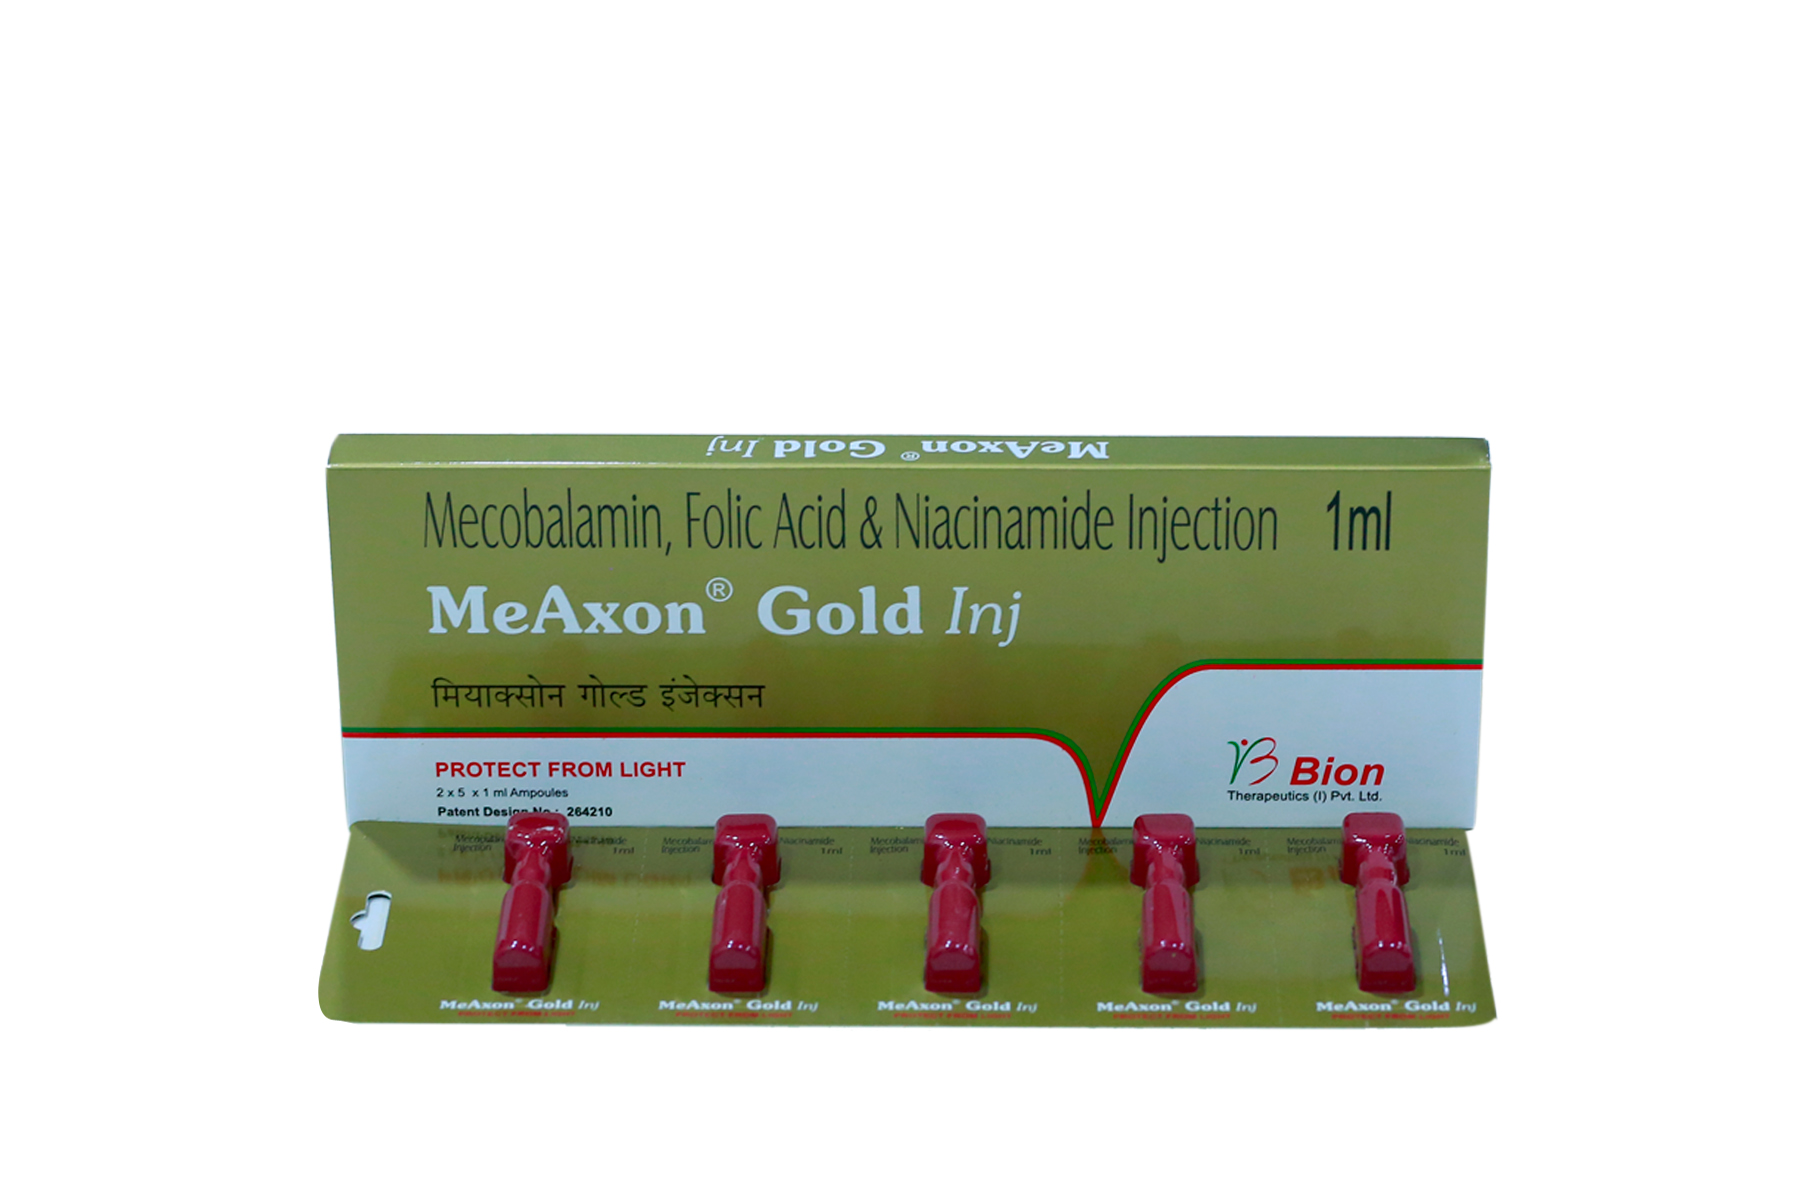 MeAxon Gold Inj